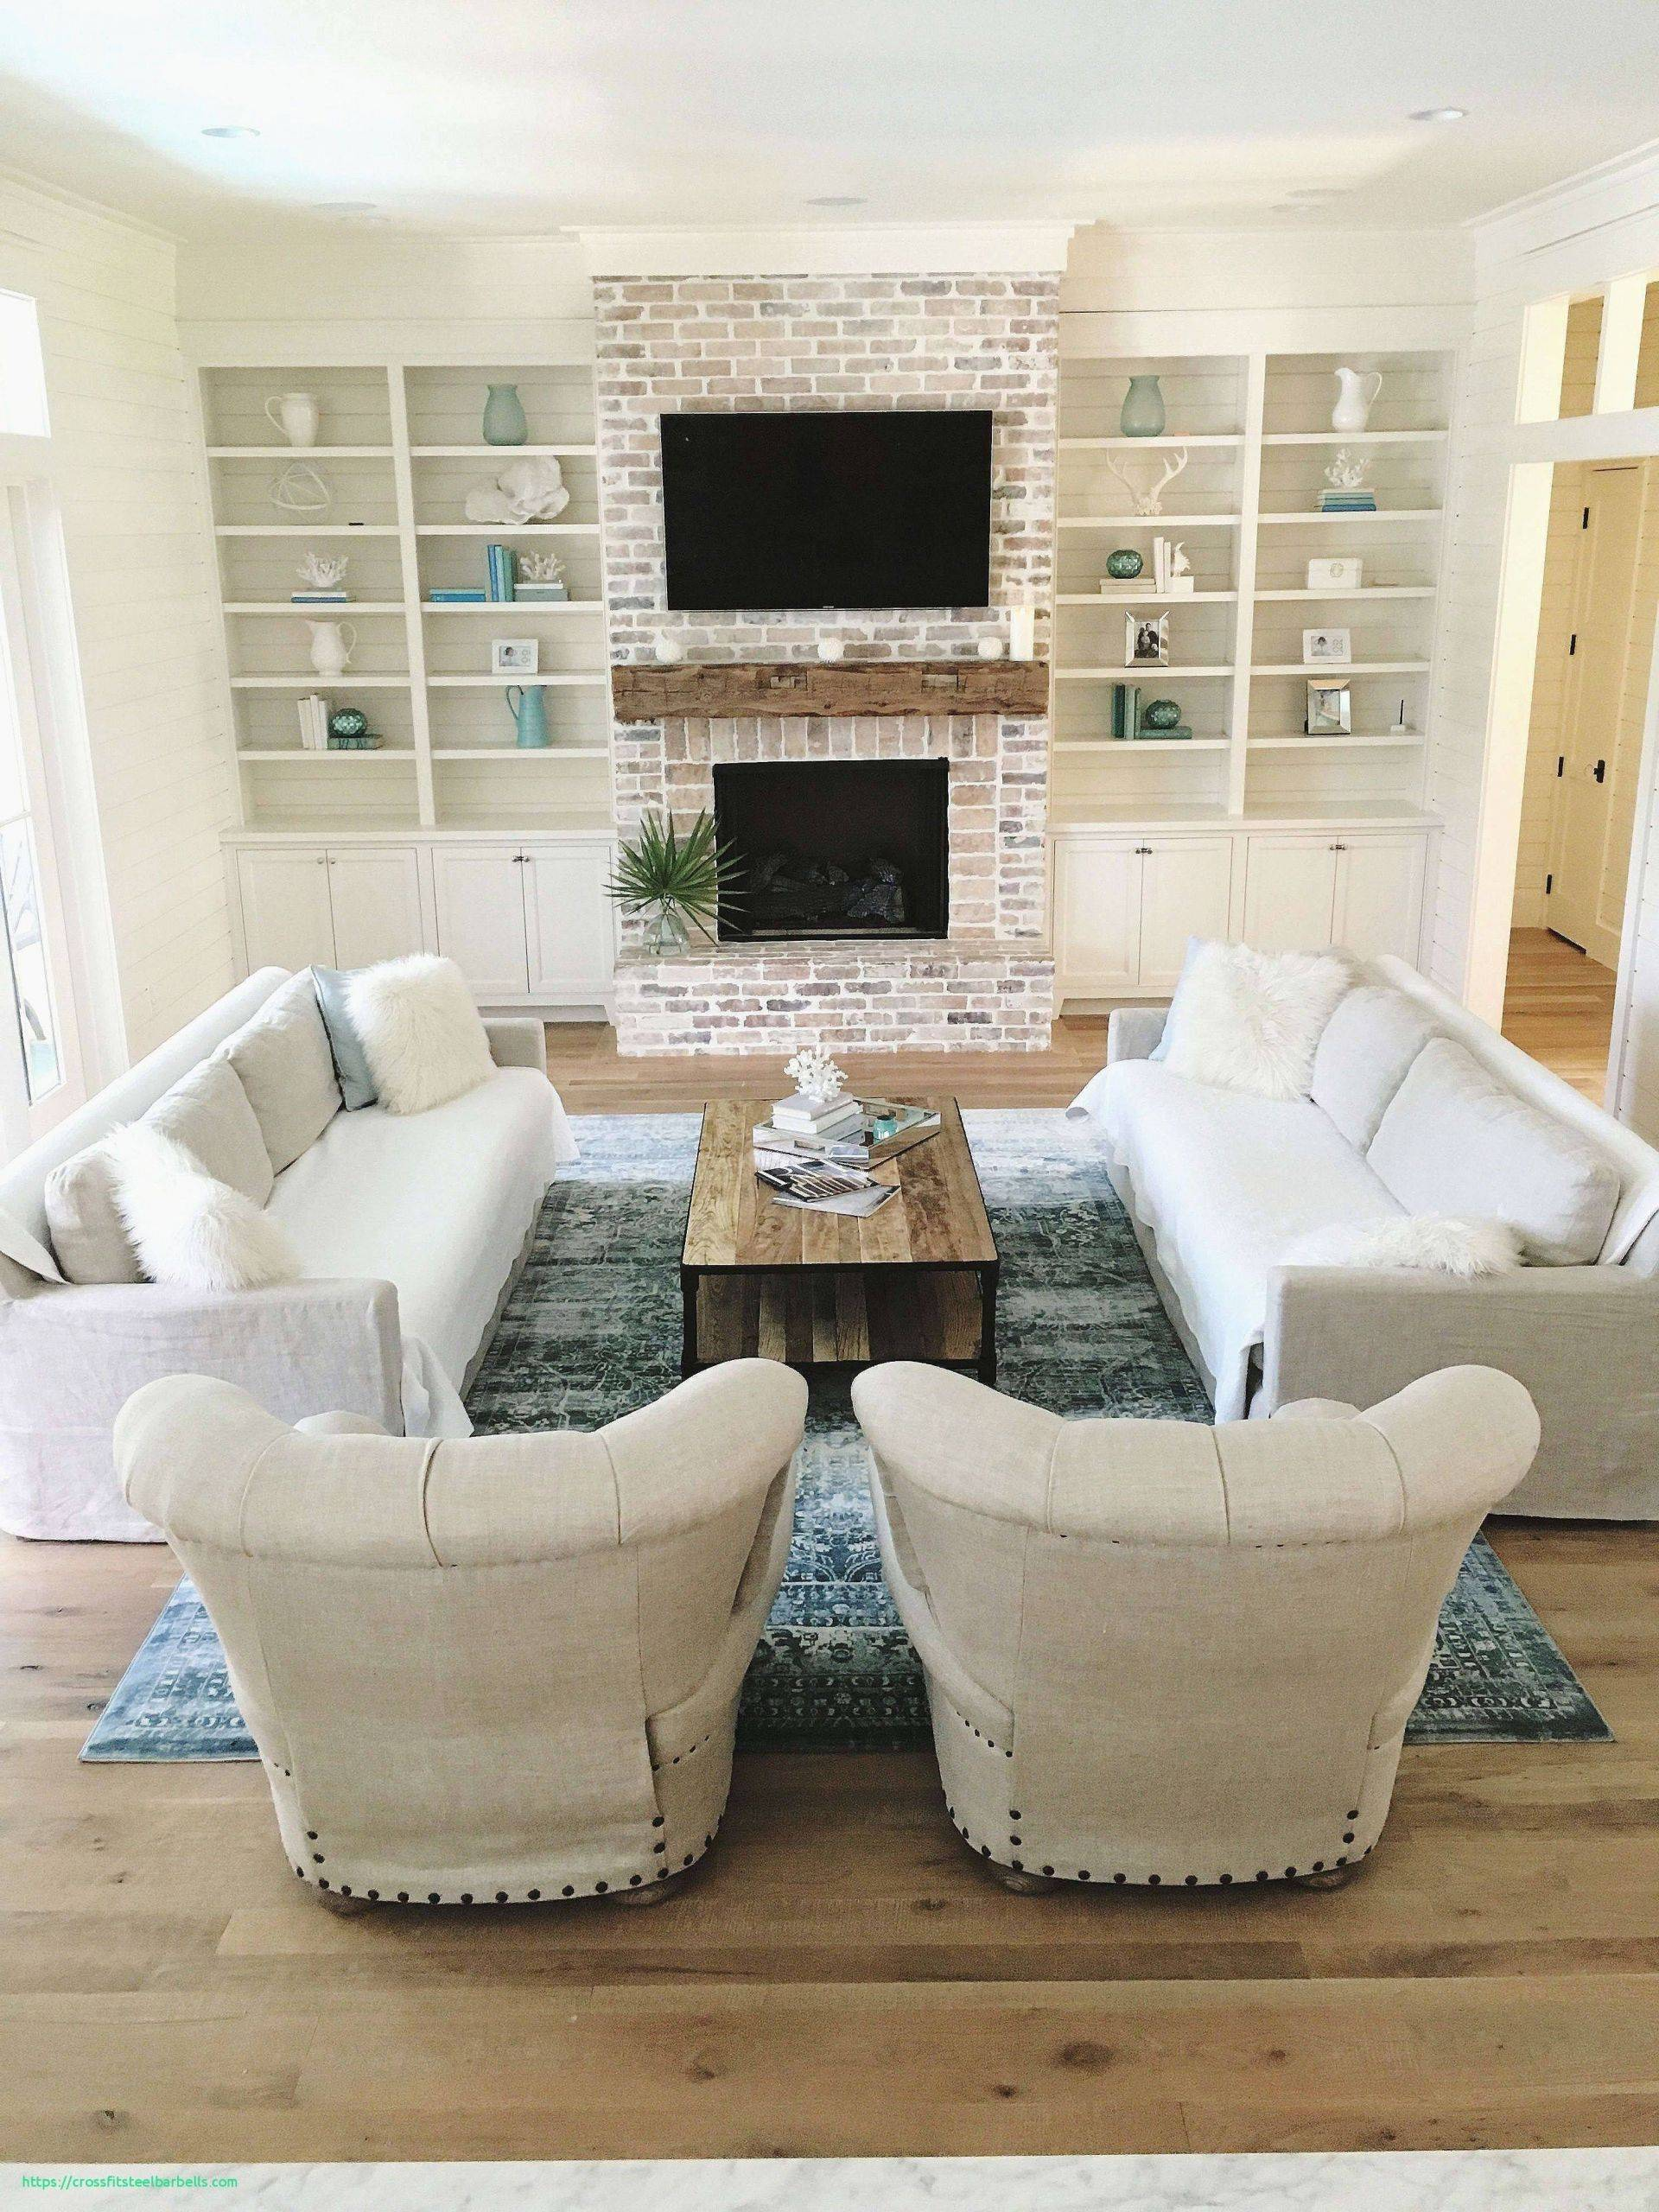 designer living room decorating ideas best of designer living rooms best seller of designer living room decorating ideas scaled